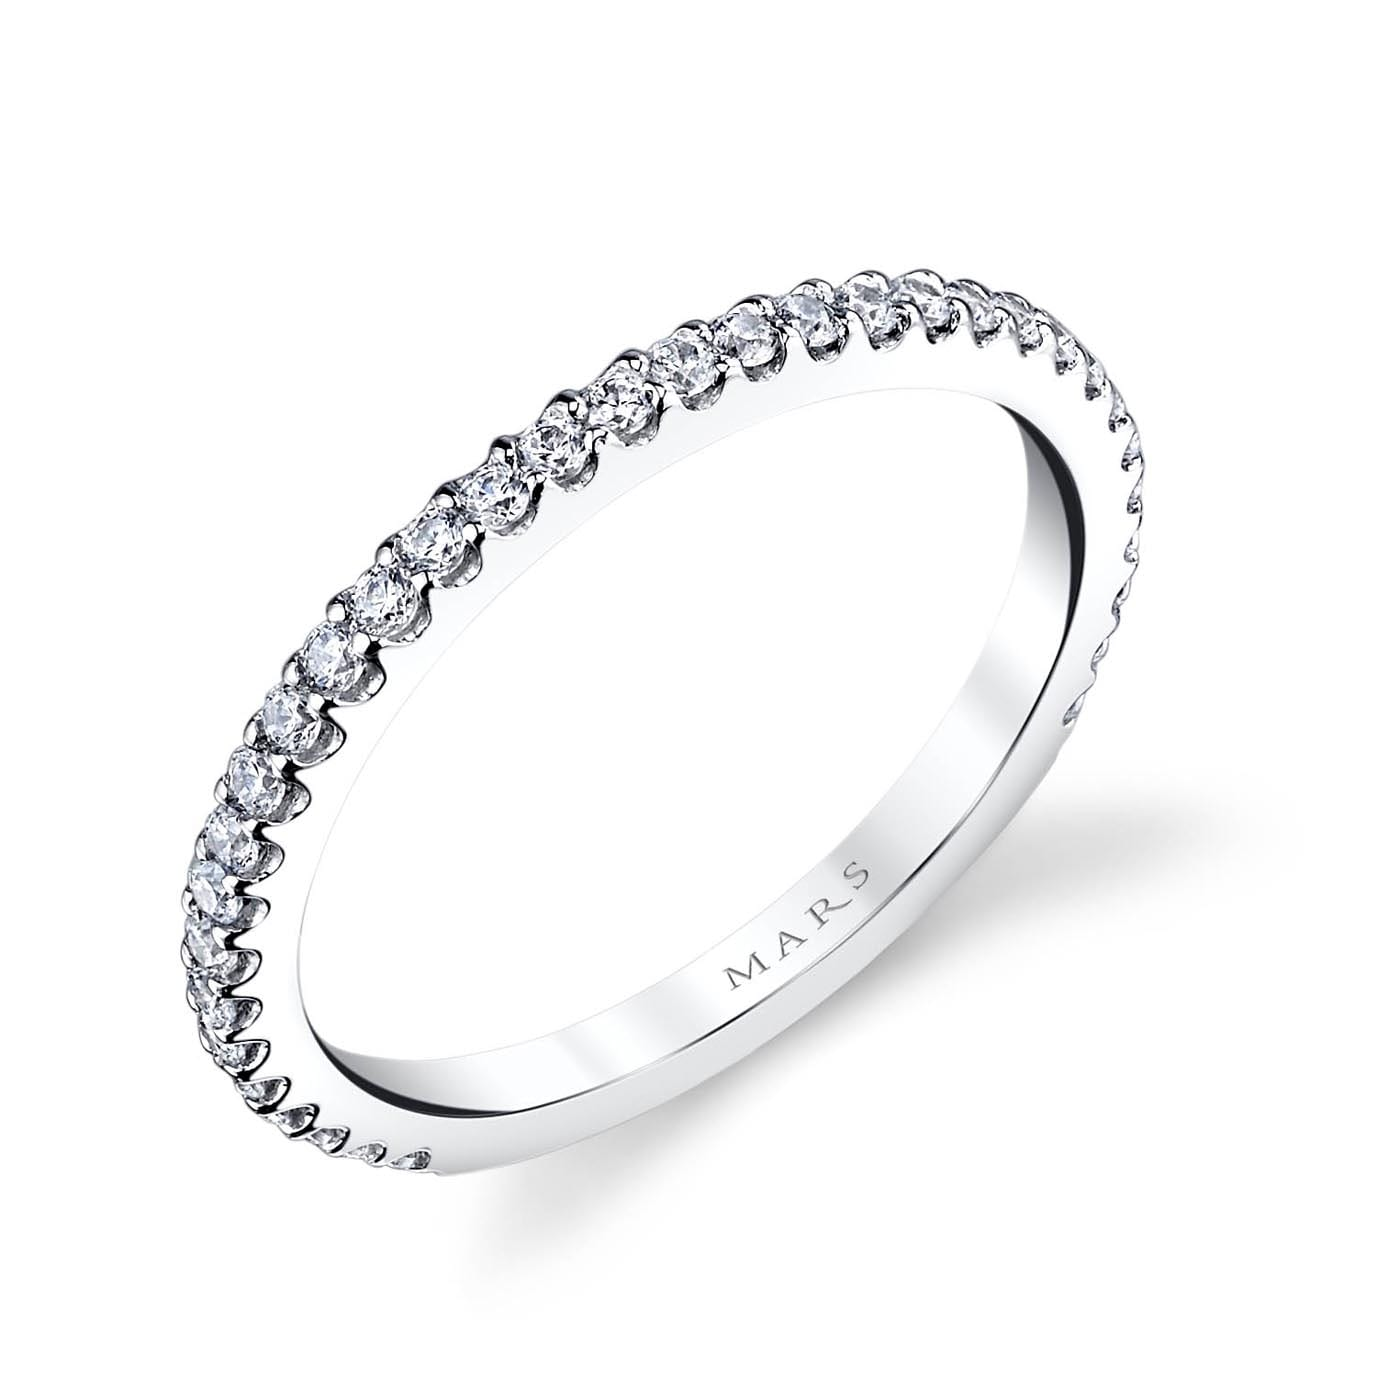 Diamond Ring - Stackable  Style #: MARS-26268